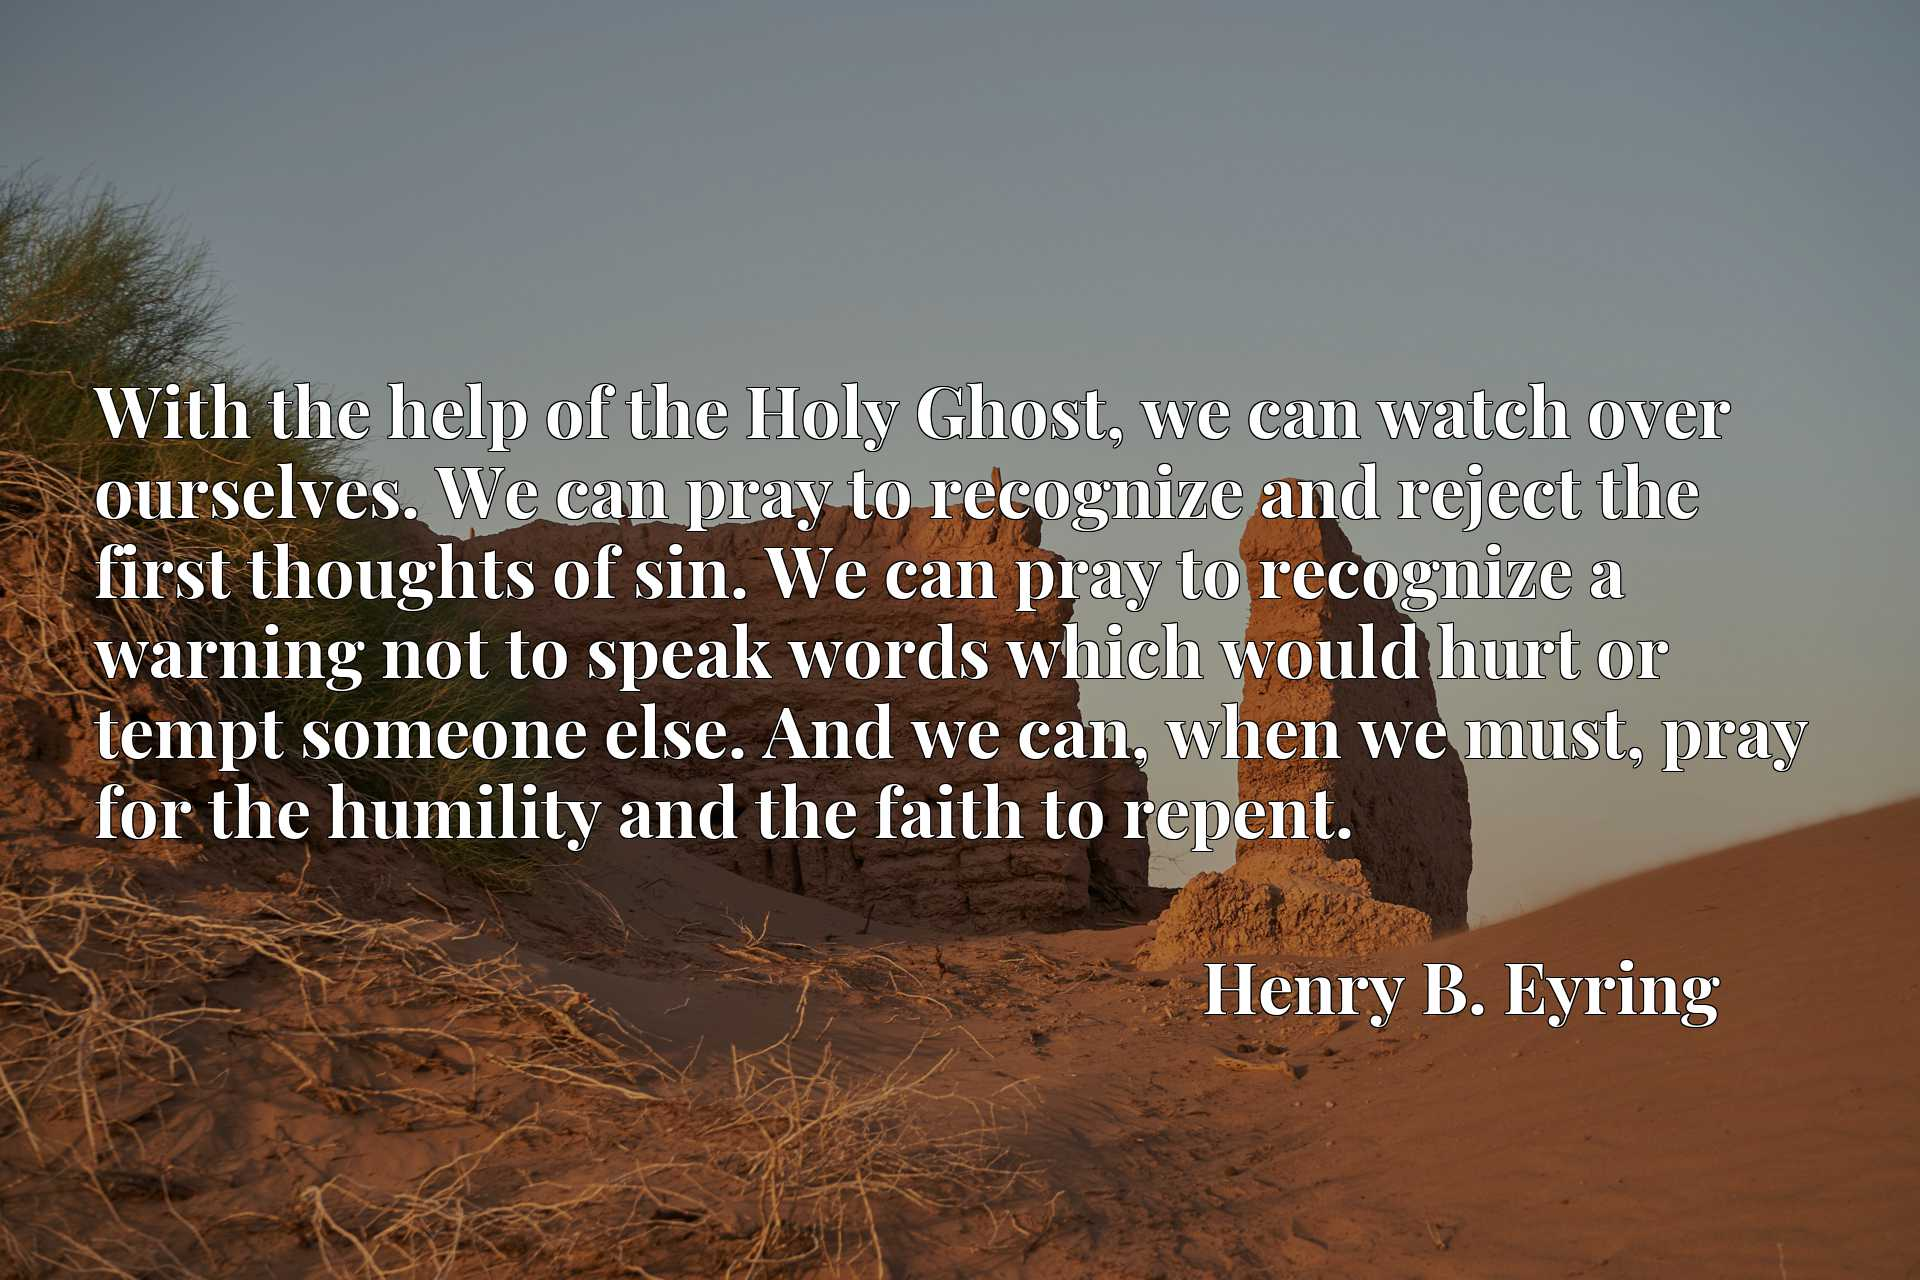 With the help of the Holy Ghost, we can watch over ourselves. We can pray to recognize and reject the first thoughts of sin. We can pray to recognize a warning not to speak words which would hurt or tempt someone else. And we can, when we must, pray for the humility and the faith to repent.